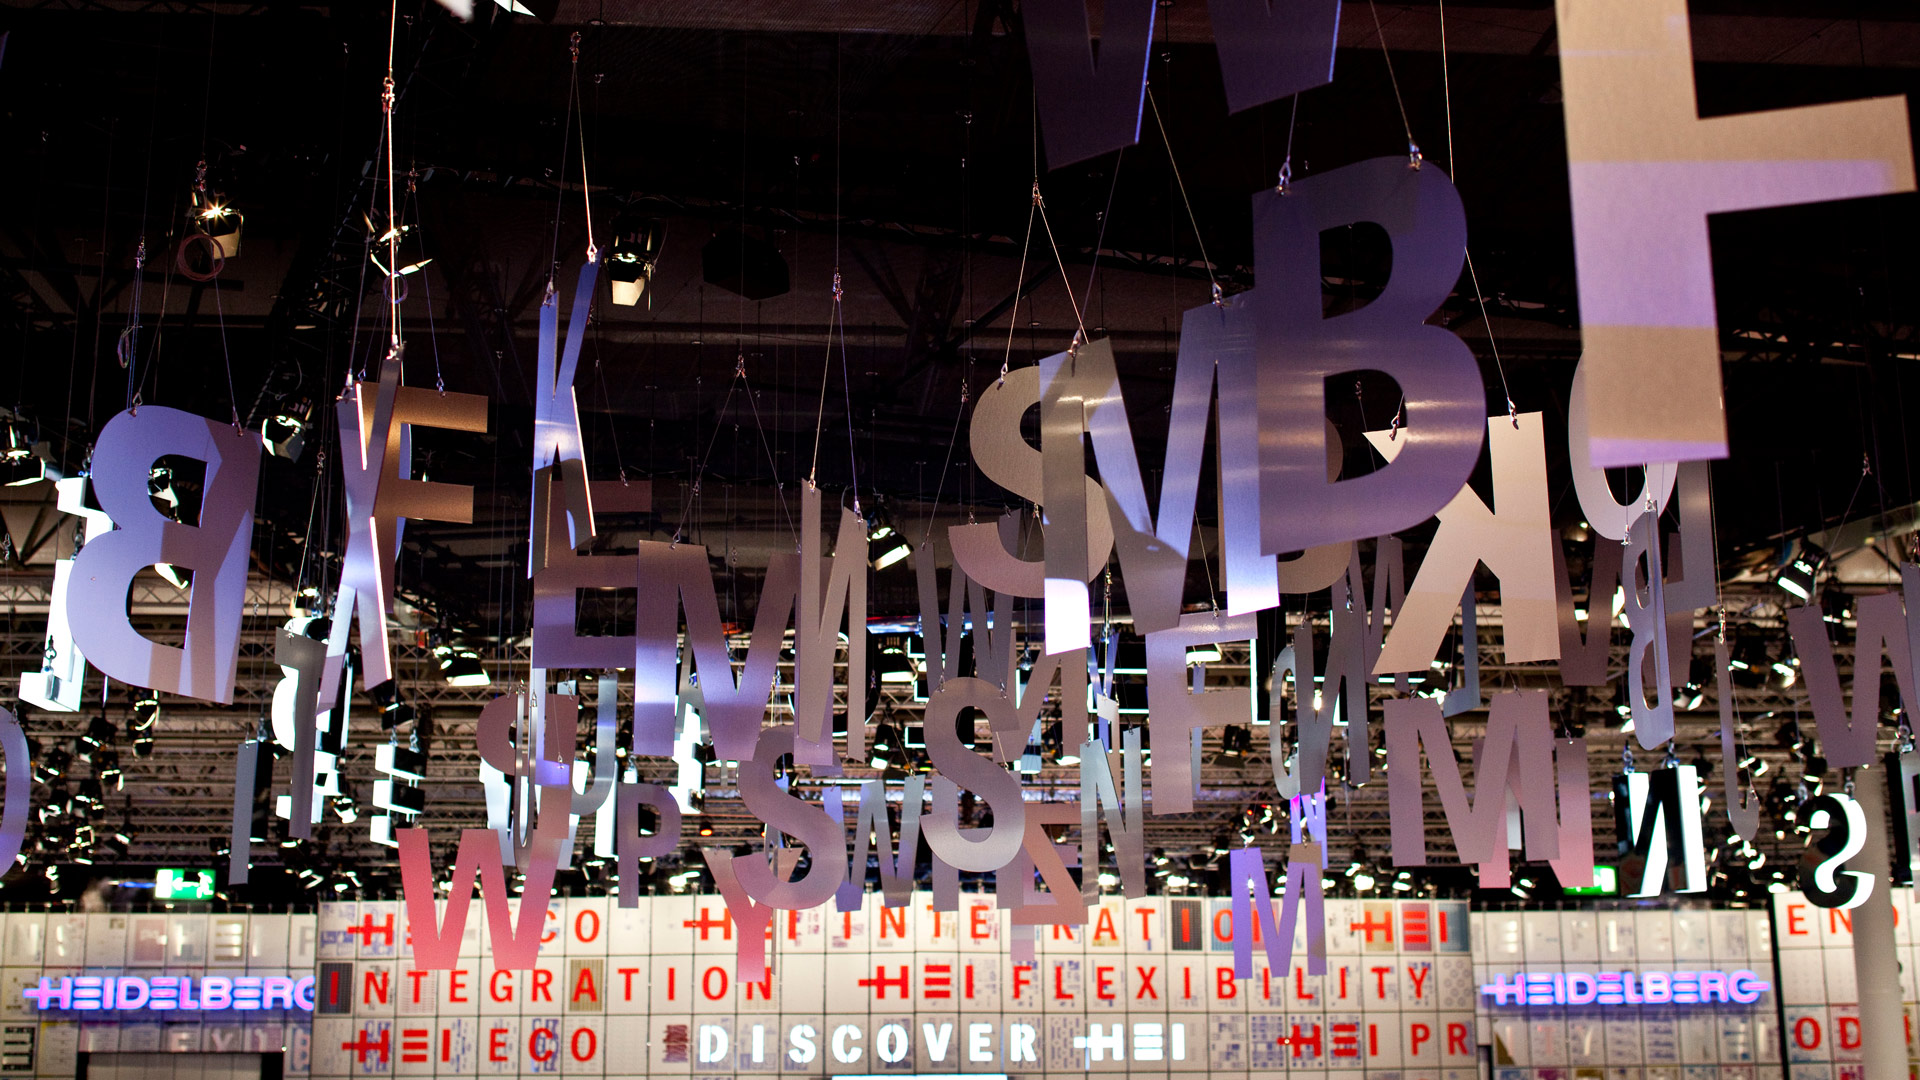 Large silver letters hang from the ceiling.